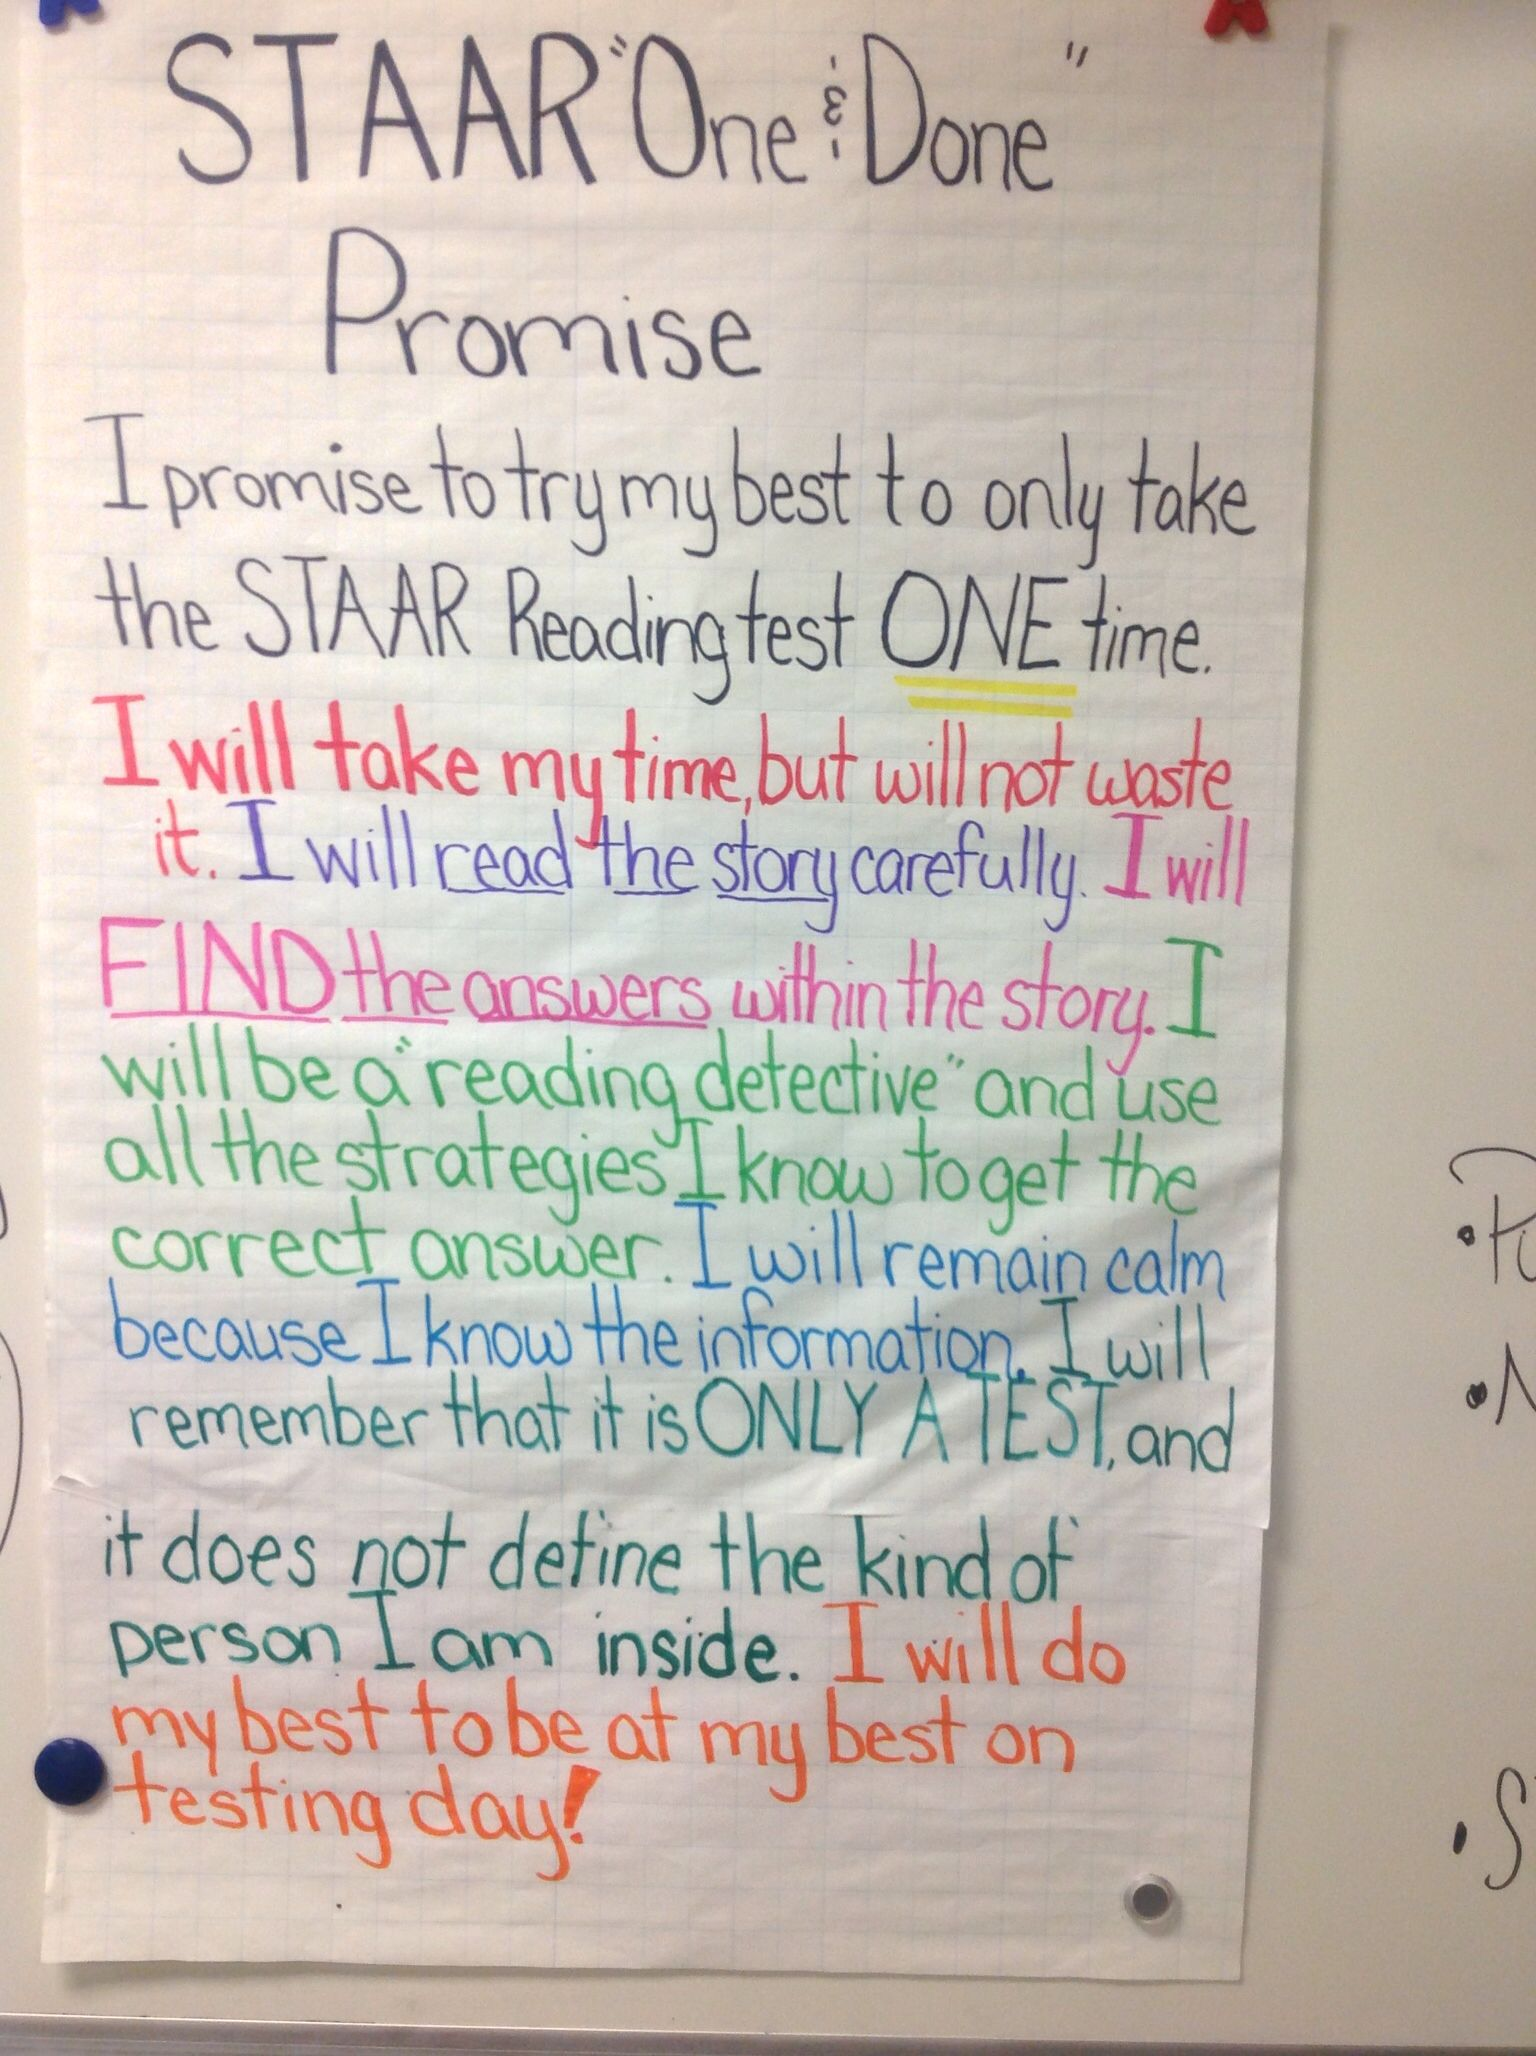 Staar Reading One And Done Promise Staar Reading Strategies Staar Reading Reading Staar Prep [ 2056 x 1536 Pixel ]